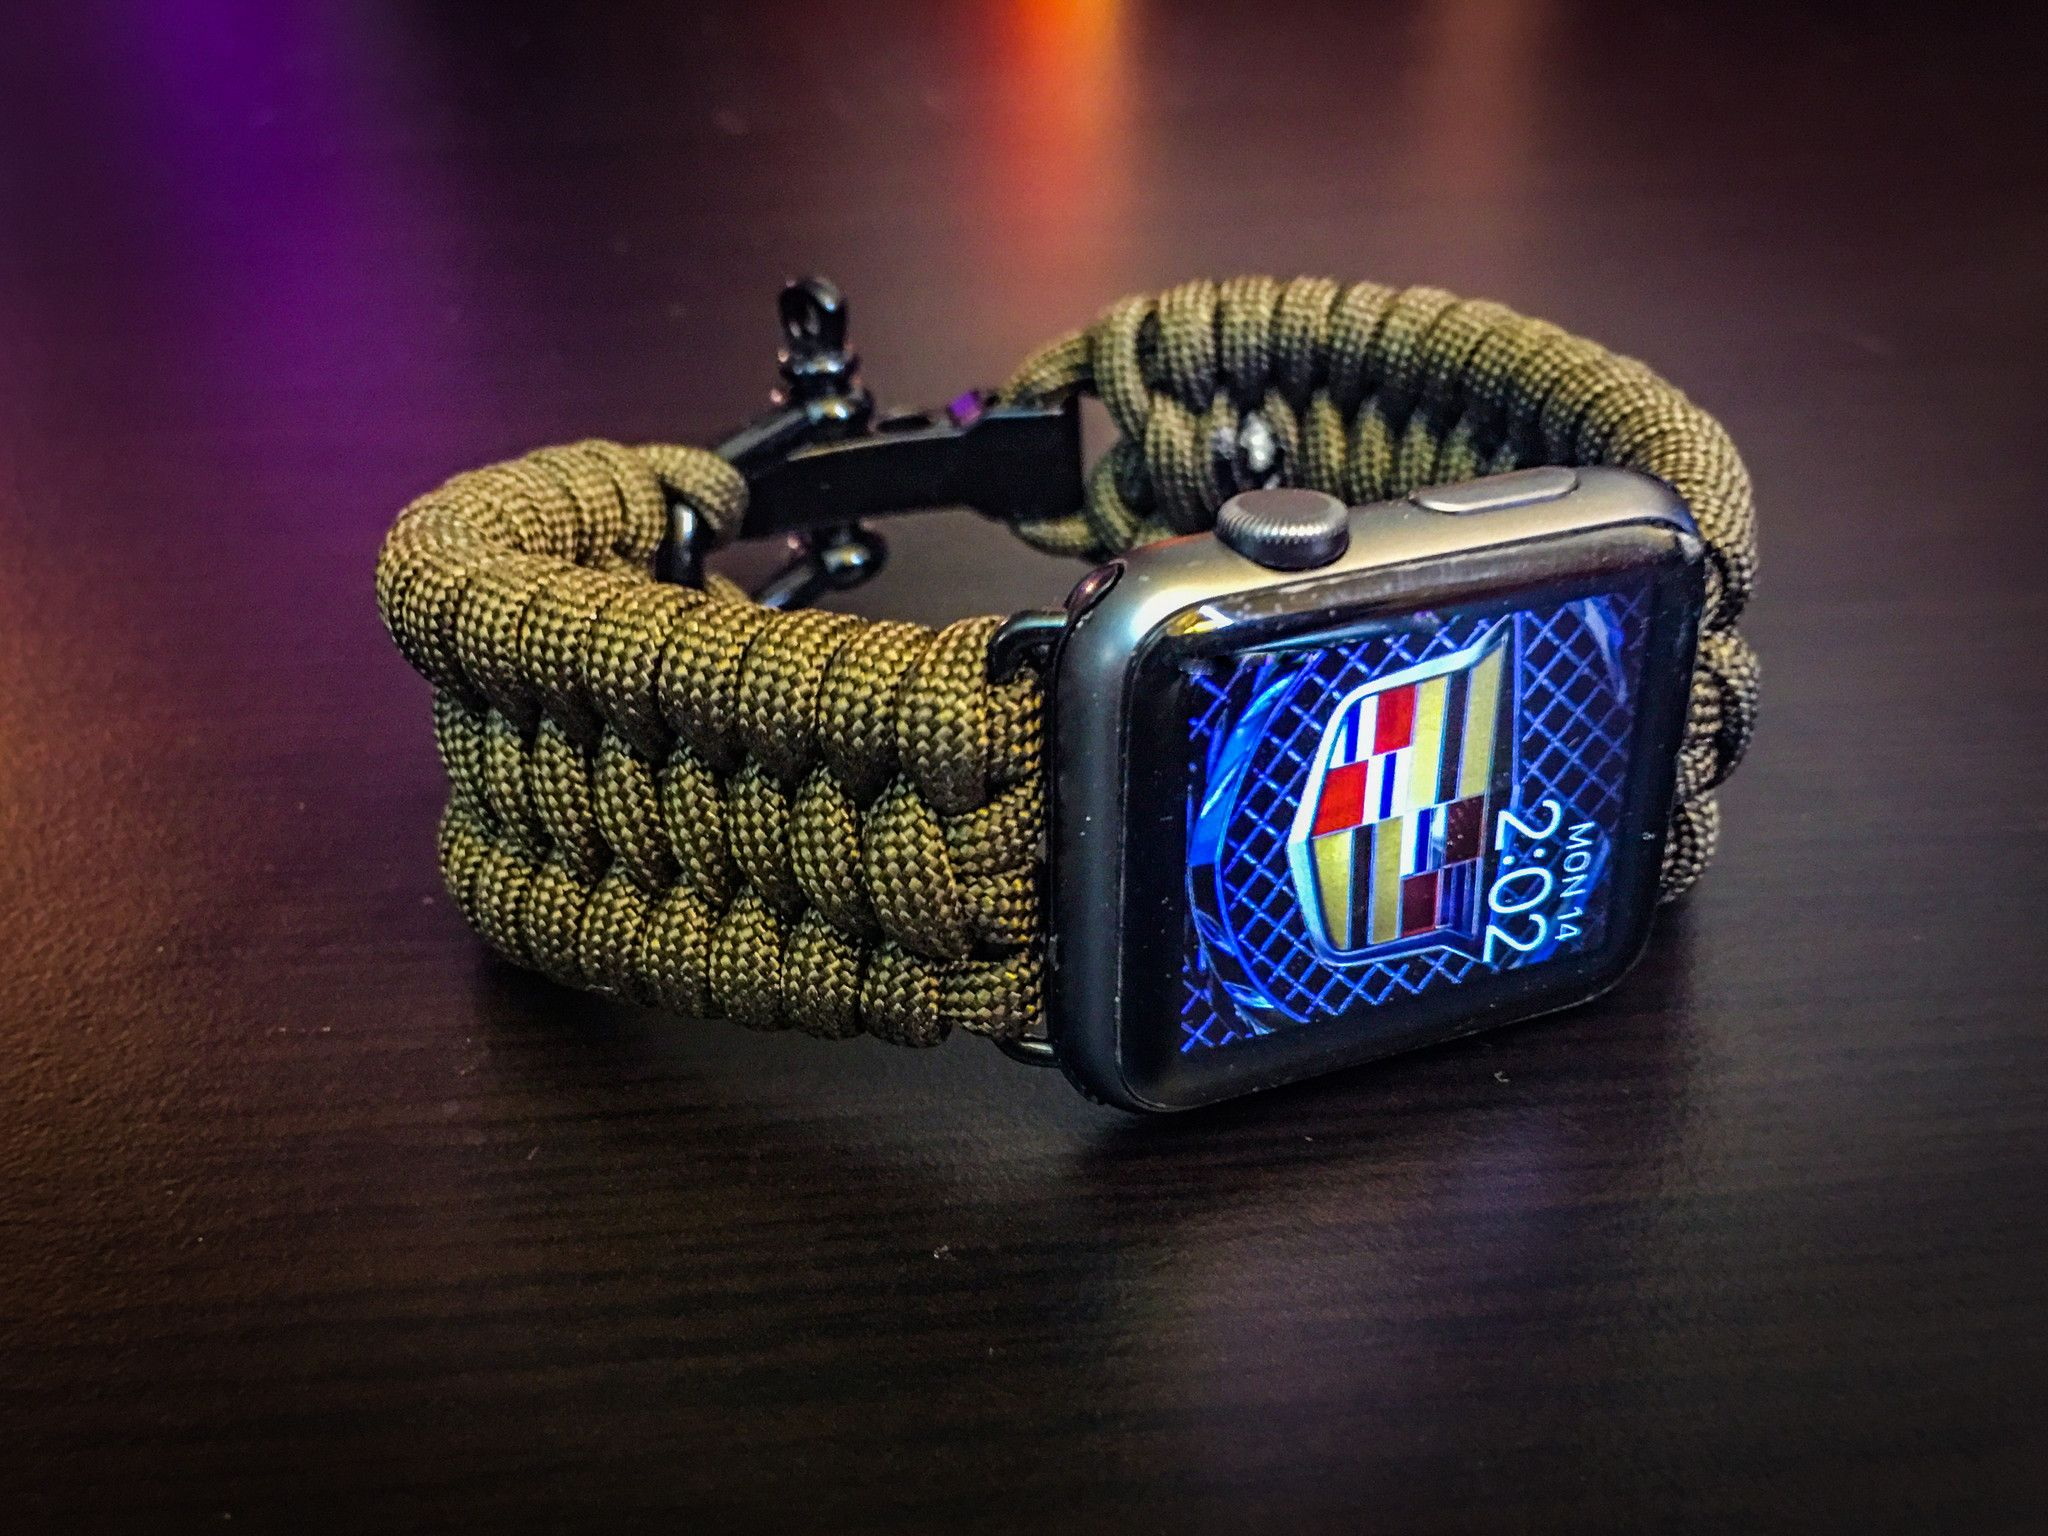 Apple Watch Paracord Band Trilobite Triple Weave Stainless